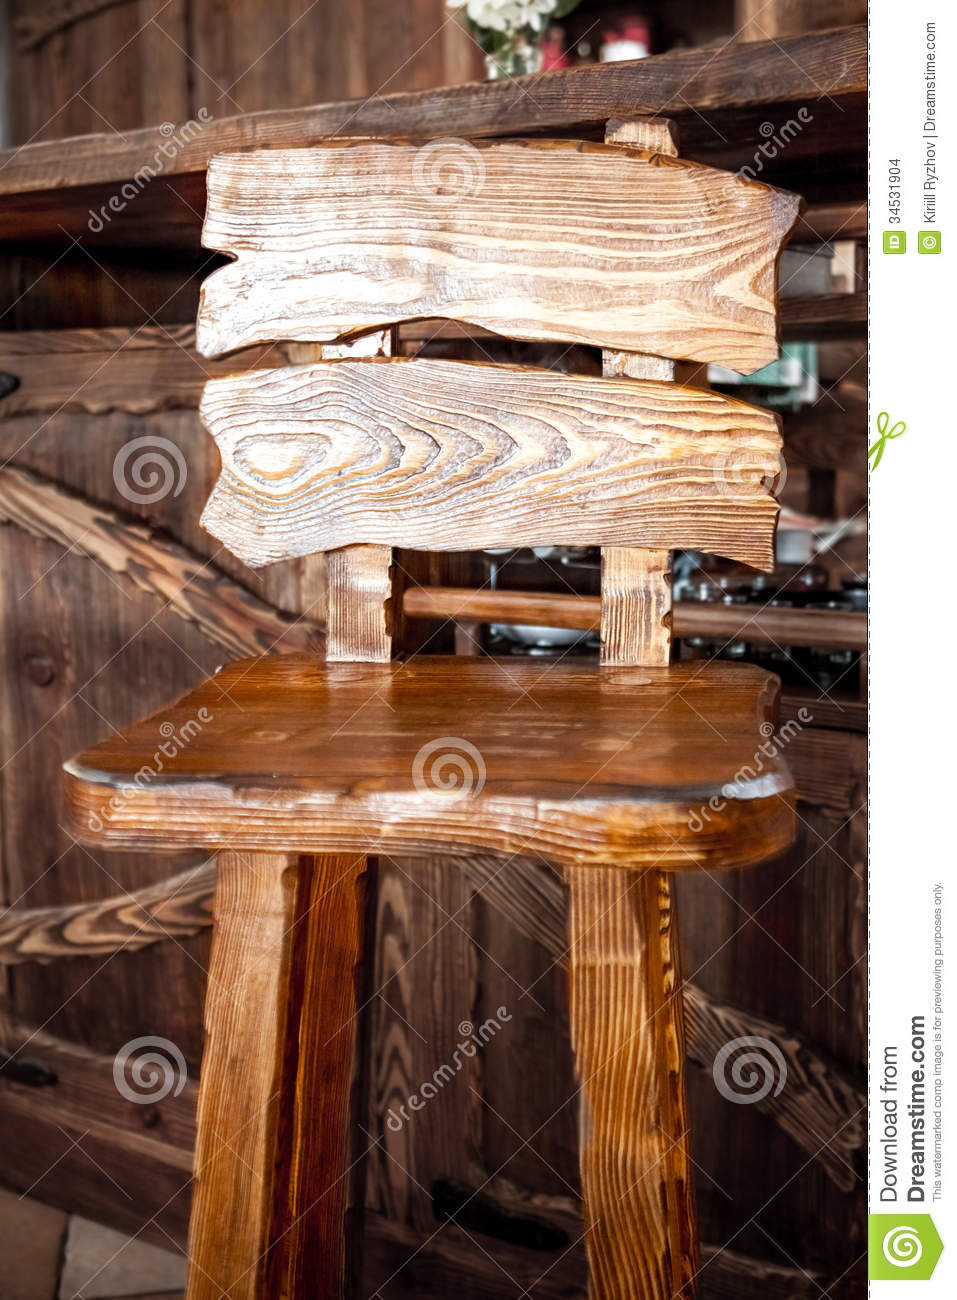 Wooden Bar Chair In Country Style Stock Photo Image